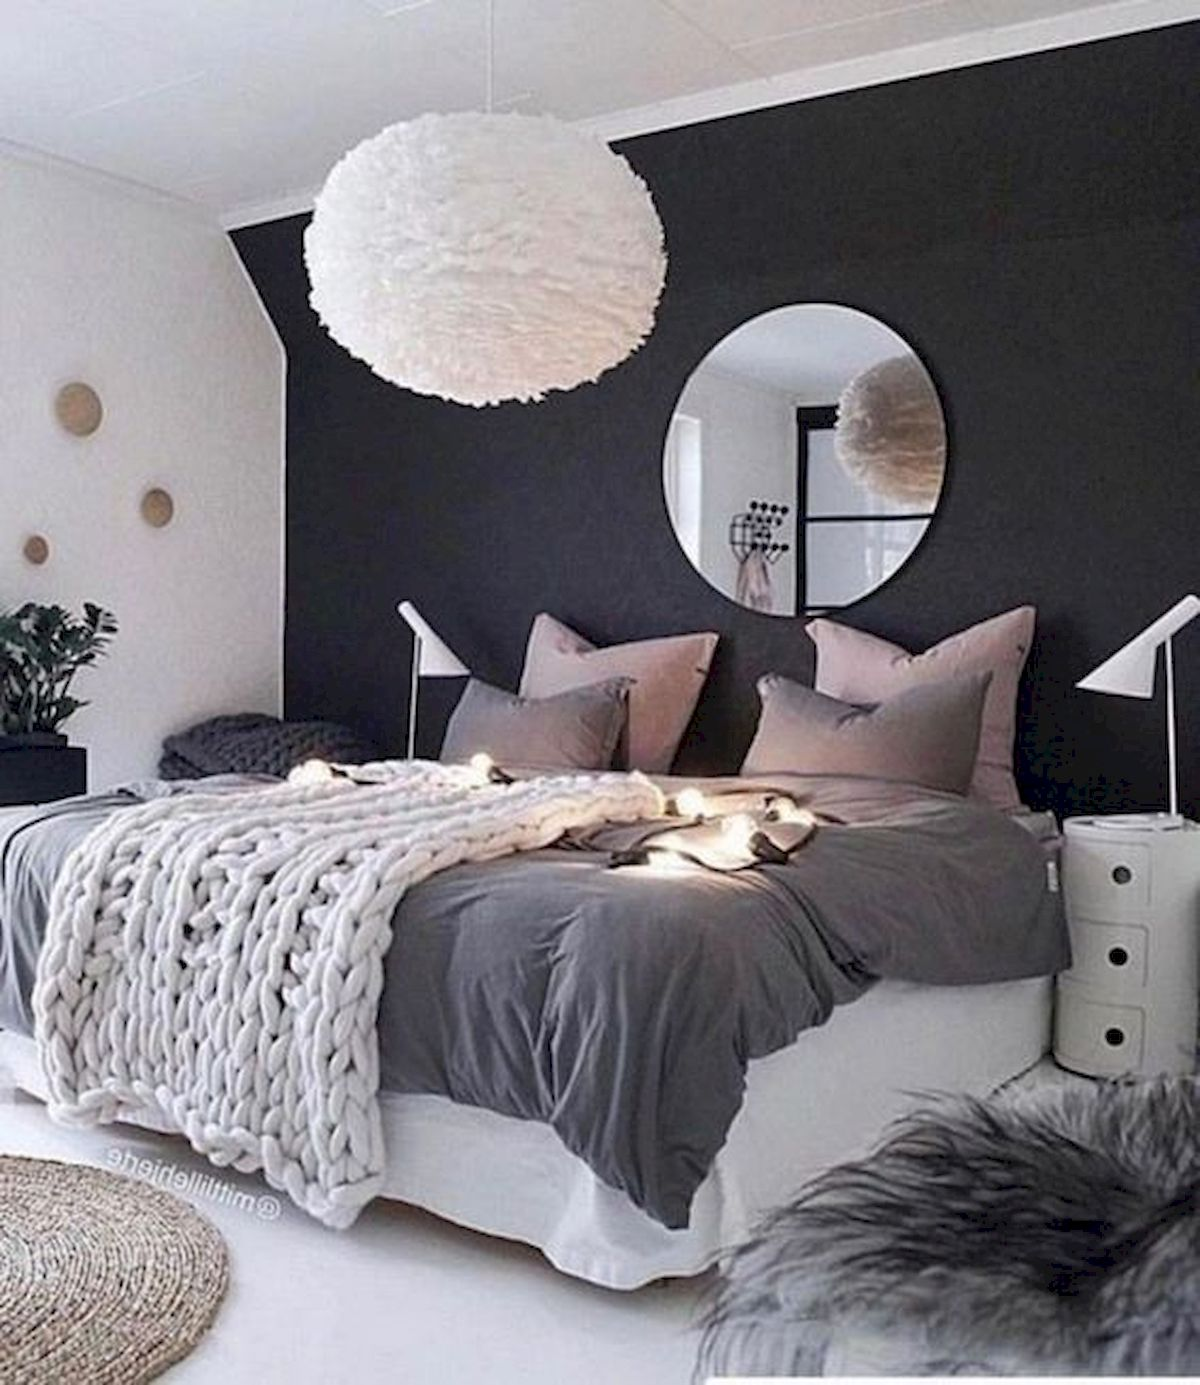 44 Awesome White Master Bedroom Design and Decor Ideas For Any Home Design (43)